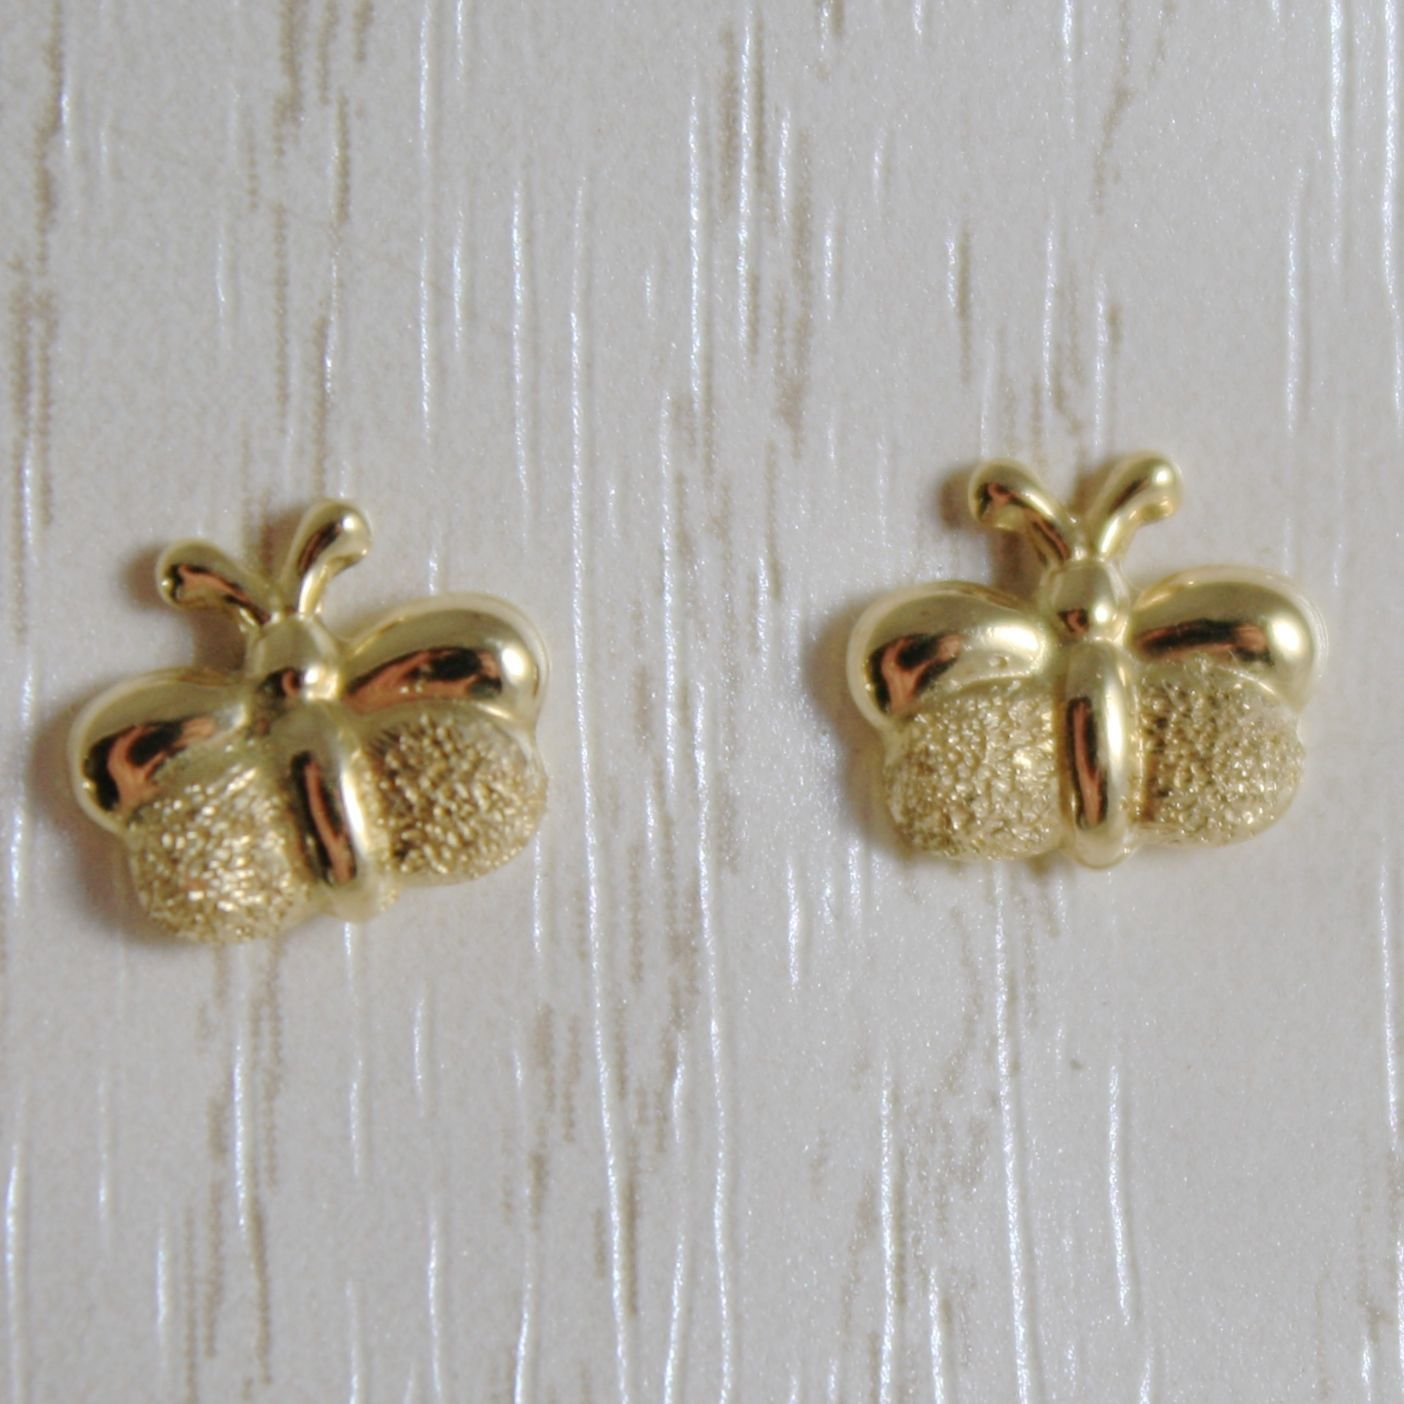 18K YELLOW GOLD EARRINGS MINI BUTTERFLY, SATIN FOR KIDS CHILD MADE IN ITALY